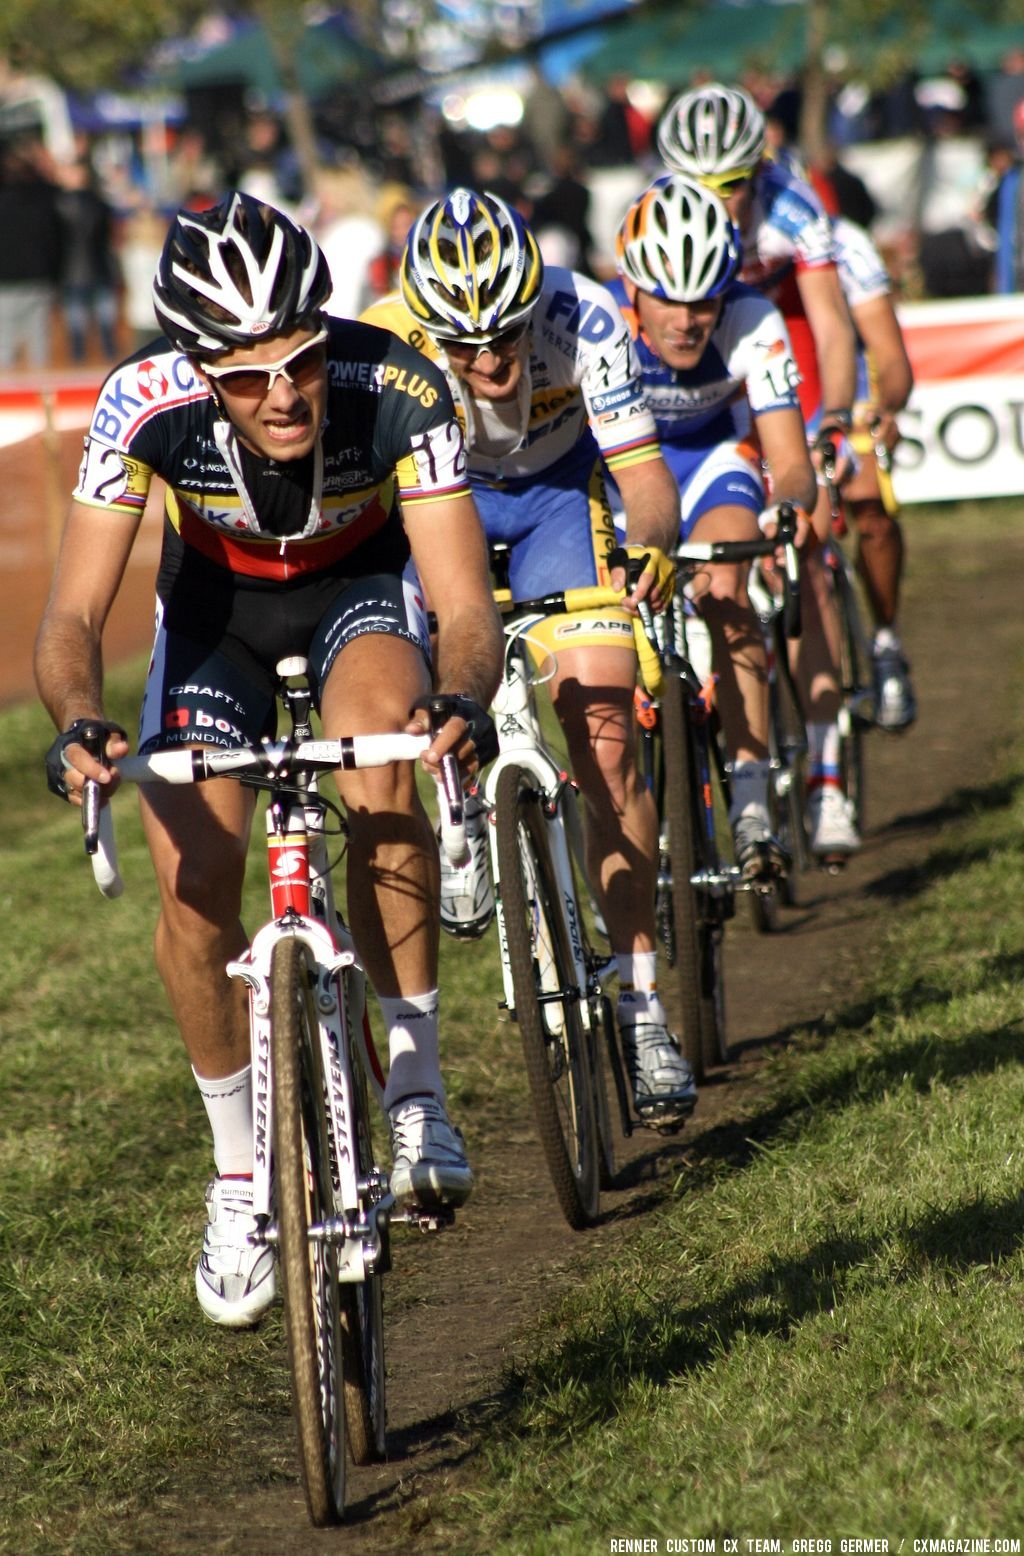 Niels Albert leads the chase. © Renner Custom CX Team, Gregg Germer